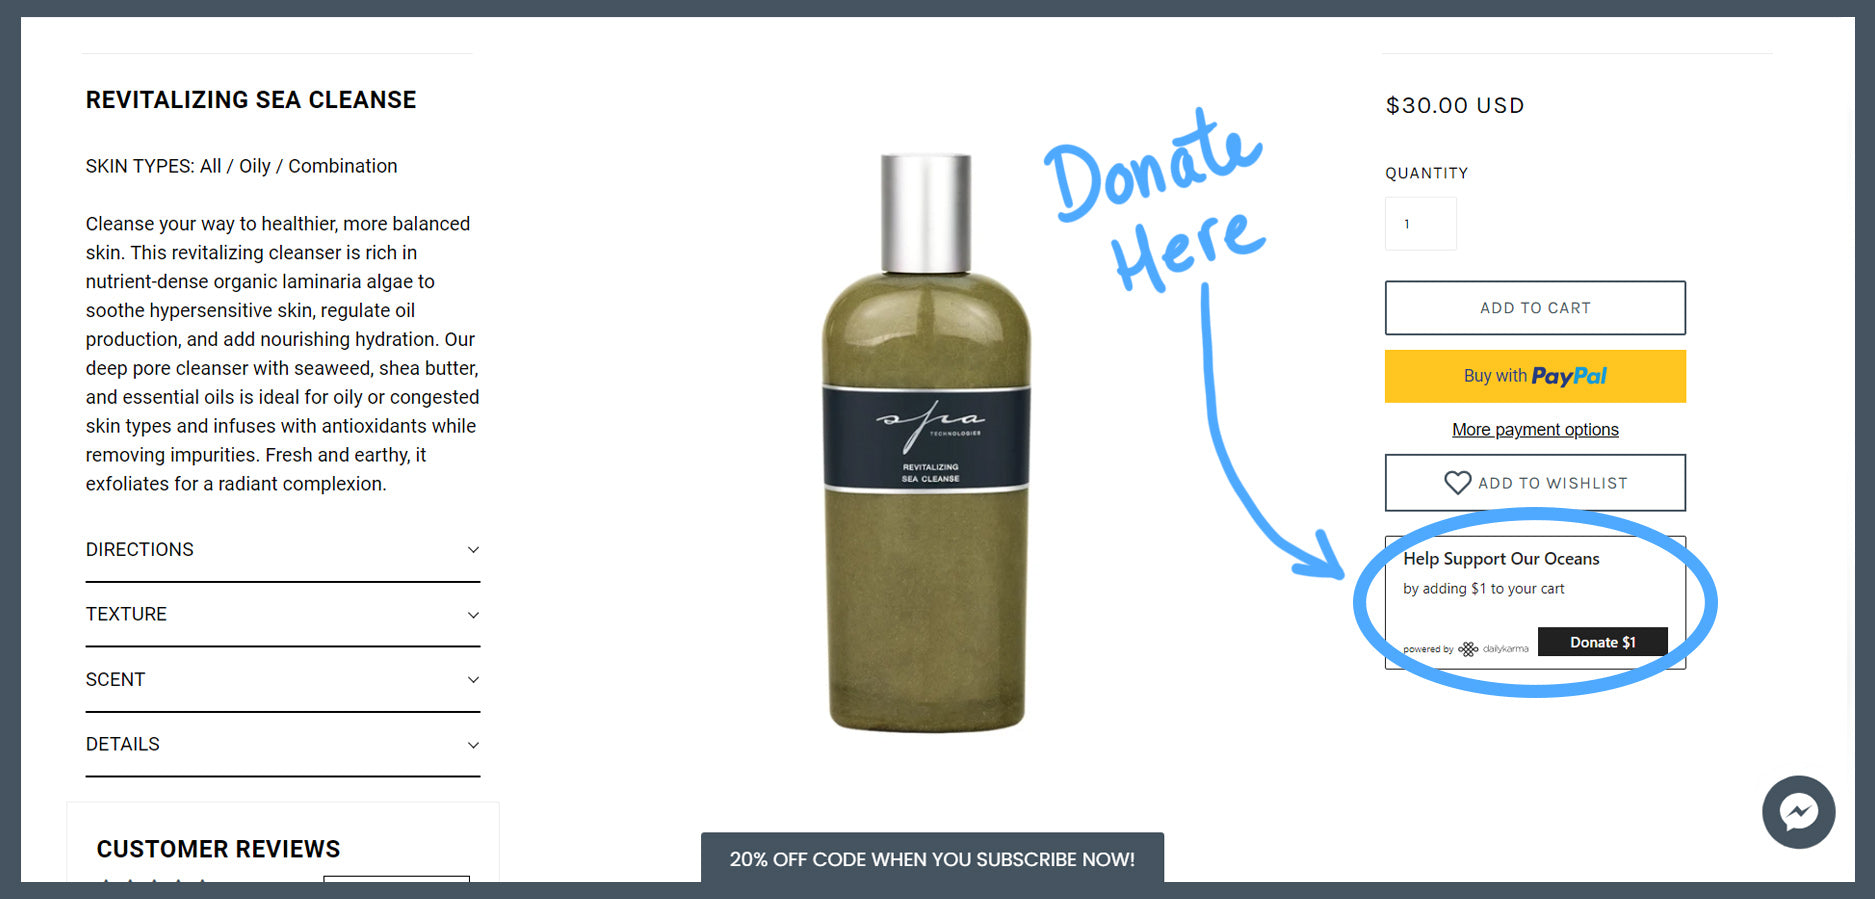 How to donate to ocean conservation organization when buying skincare